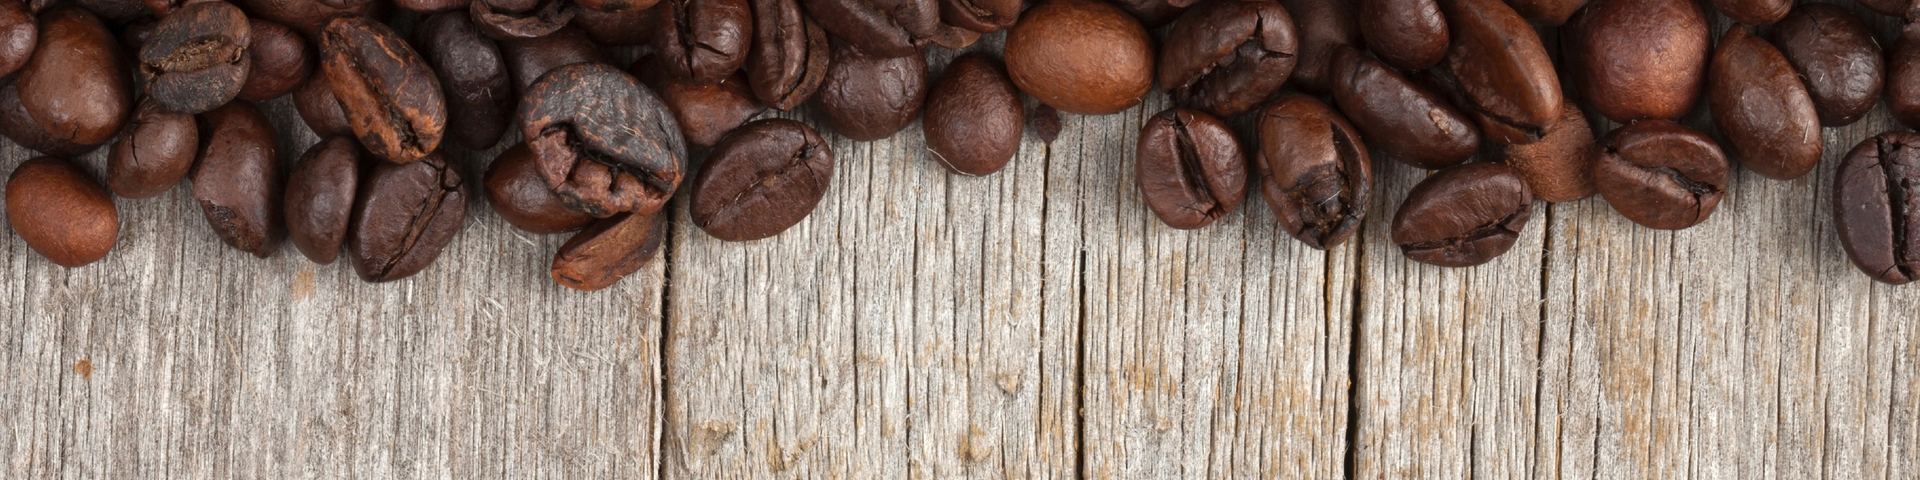 Espresso beans on wood